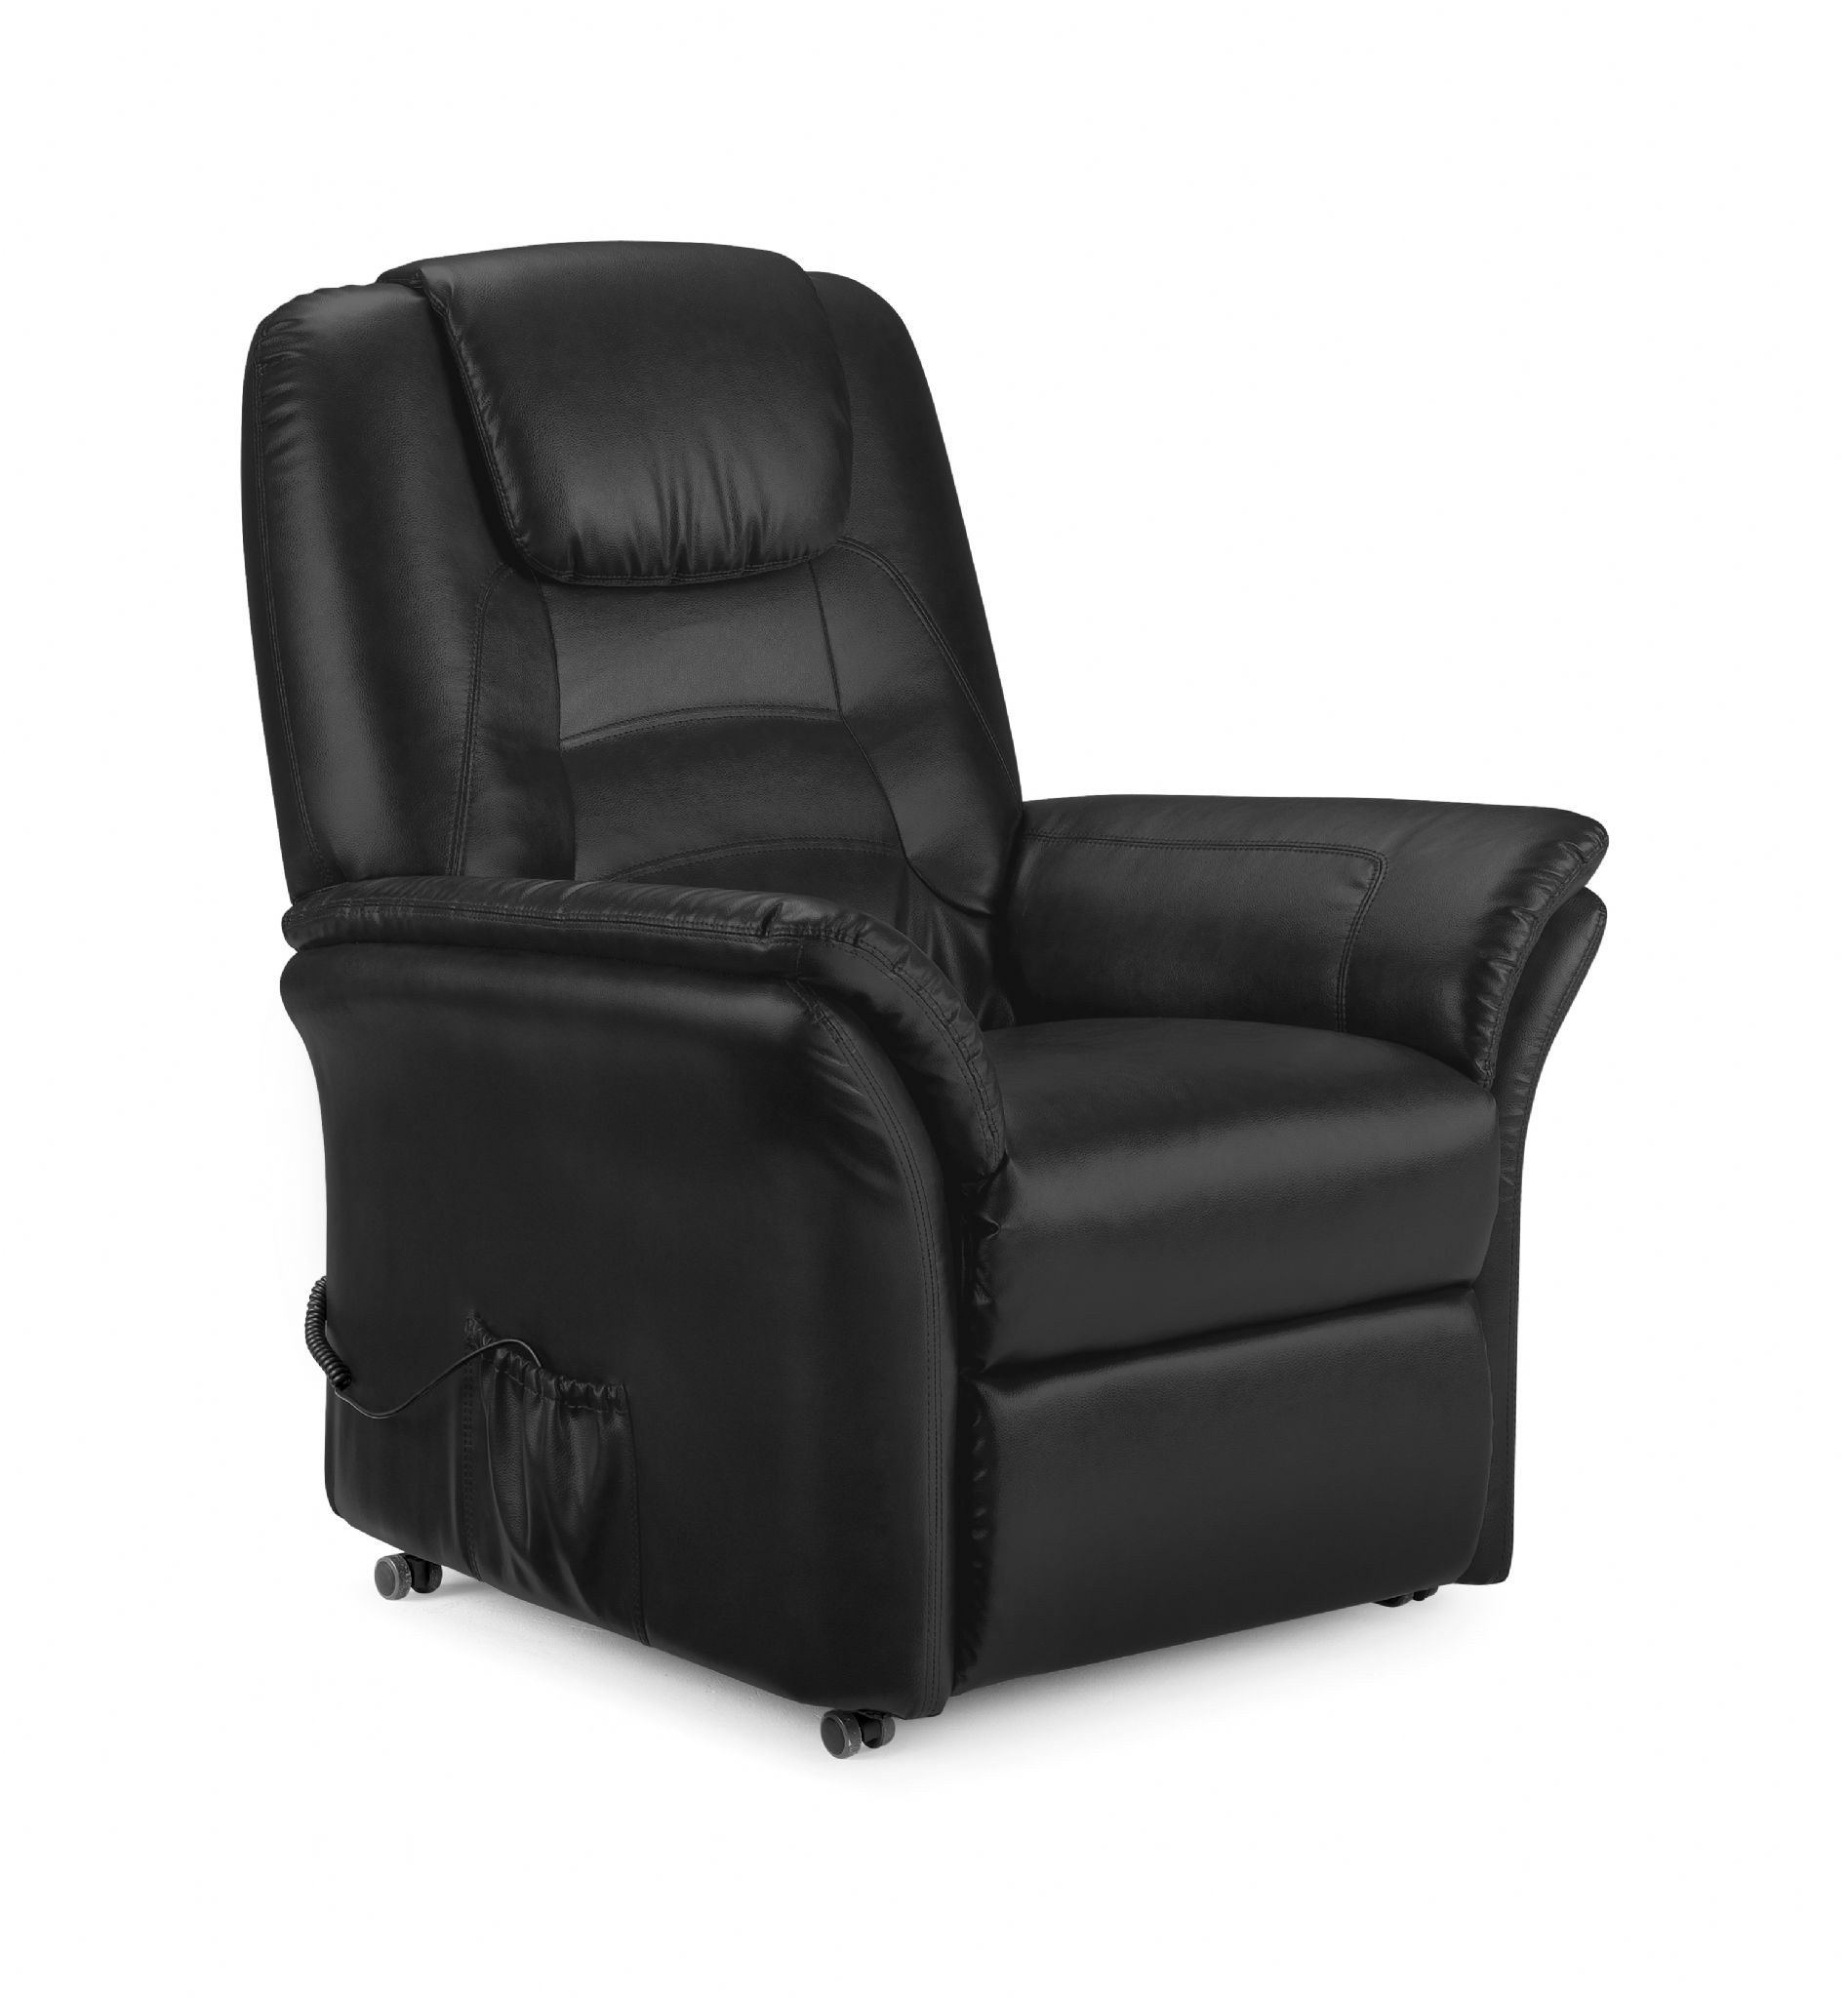 faux leather recliner chair covers vintage dining room chairs montesilvano black rise and recline jb459